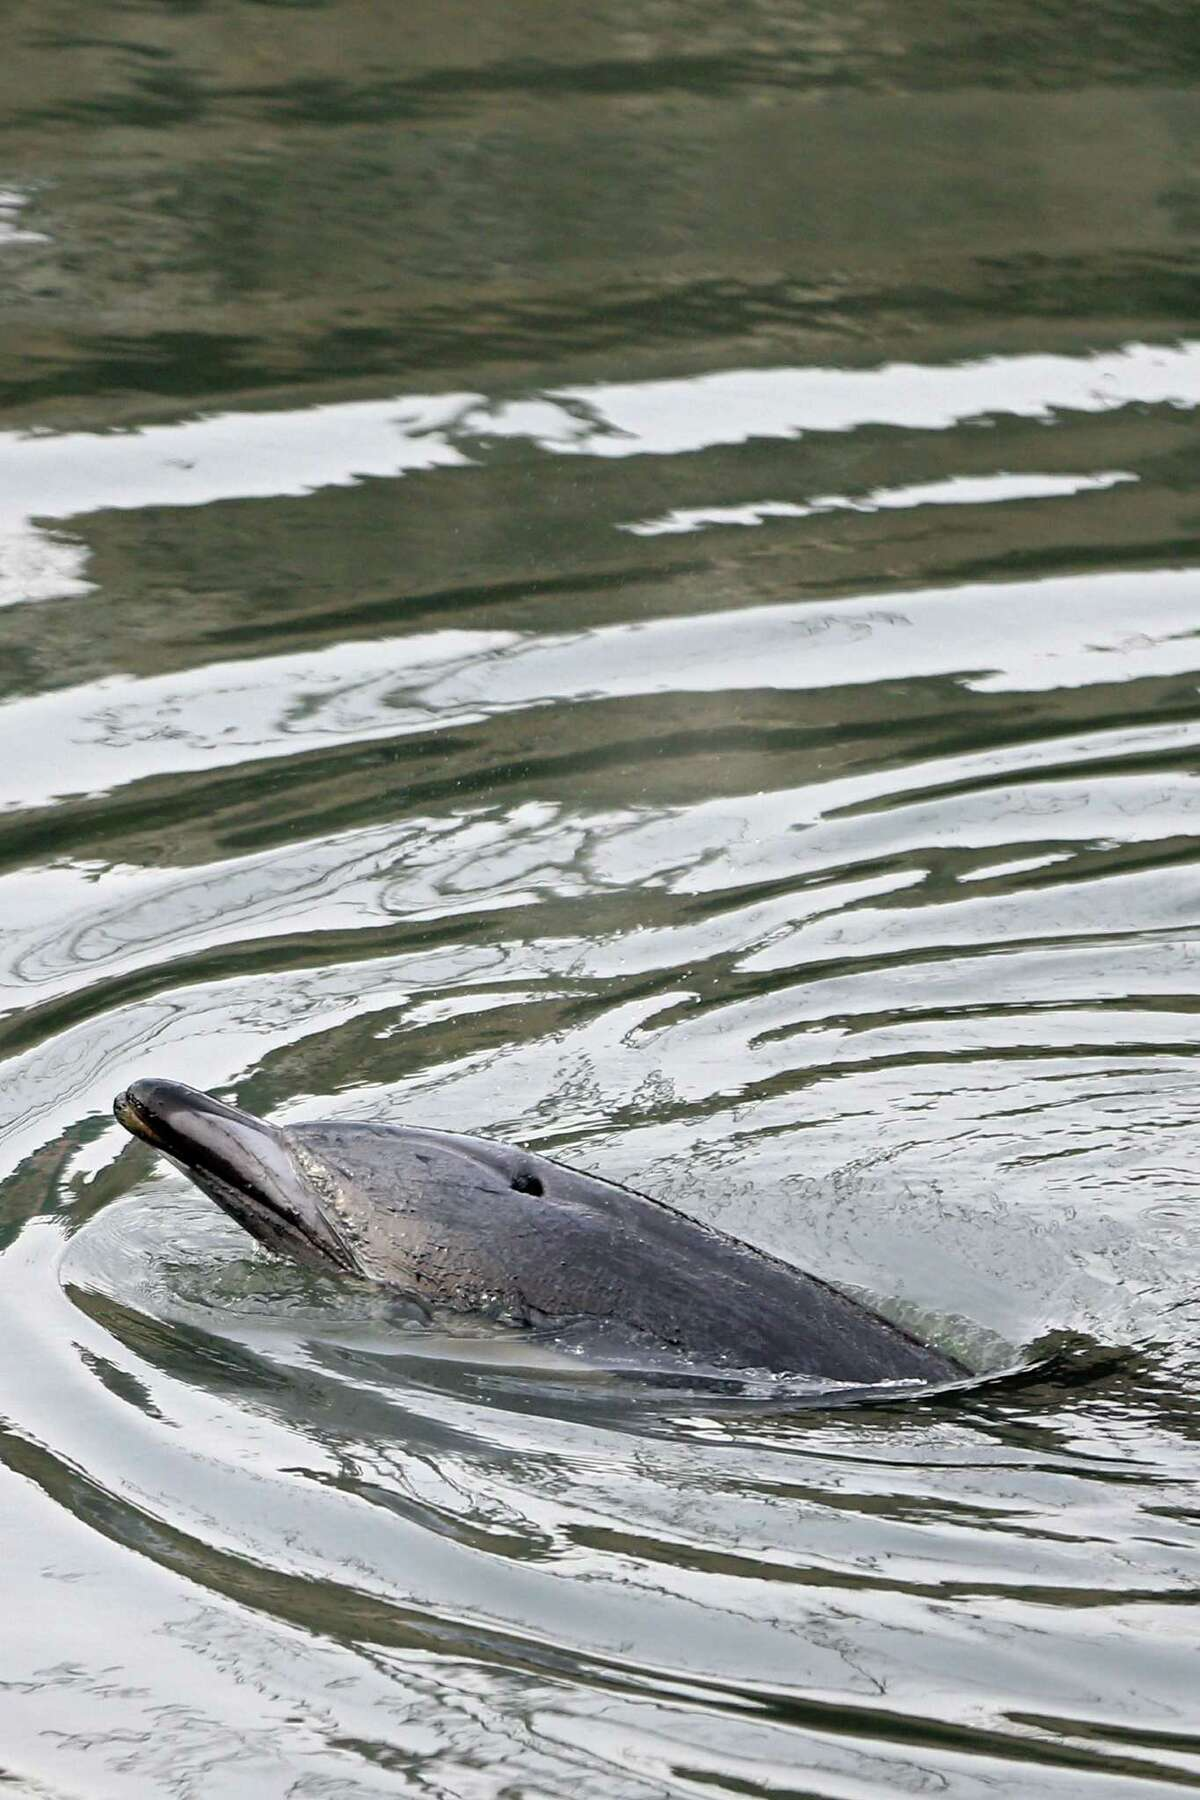 NEW YORK, NY - JANUARY 25: A common dolphin comes up for air after getting stuck in a section of the Gowanus Canal on January 25, 2013 in Brooklyn borough of New York City. Officials are waiting till high tide in the hopes that the stuck dolphin will be able to free itself from the canal.